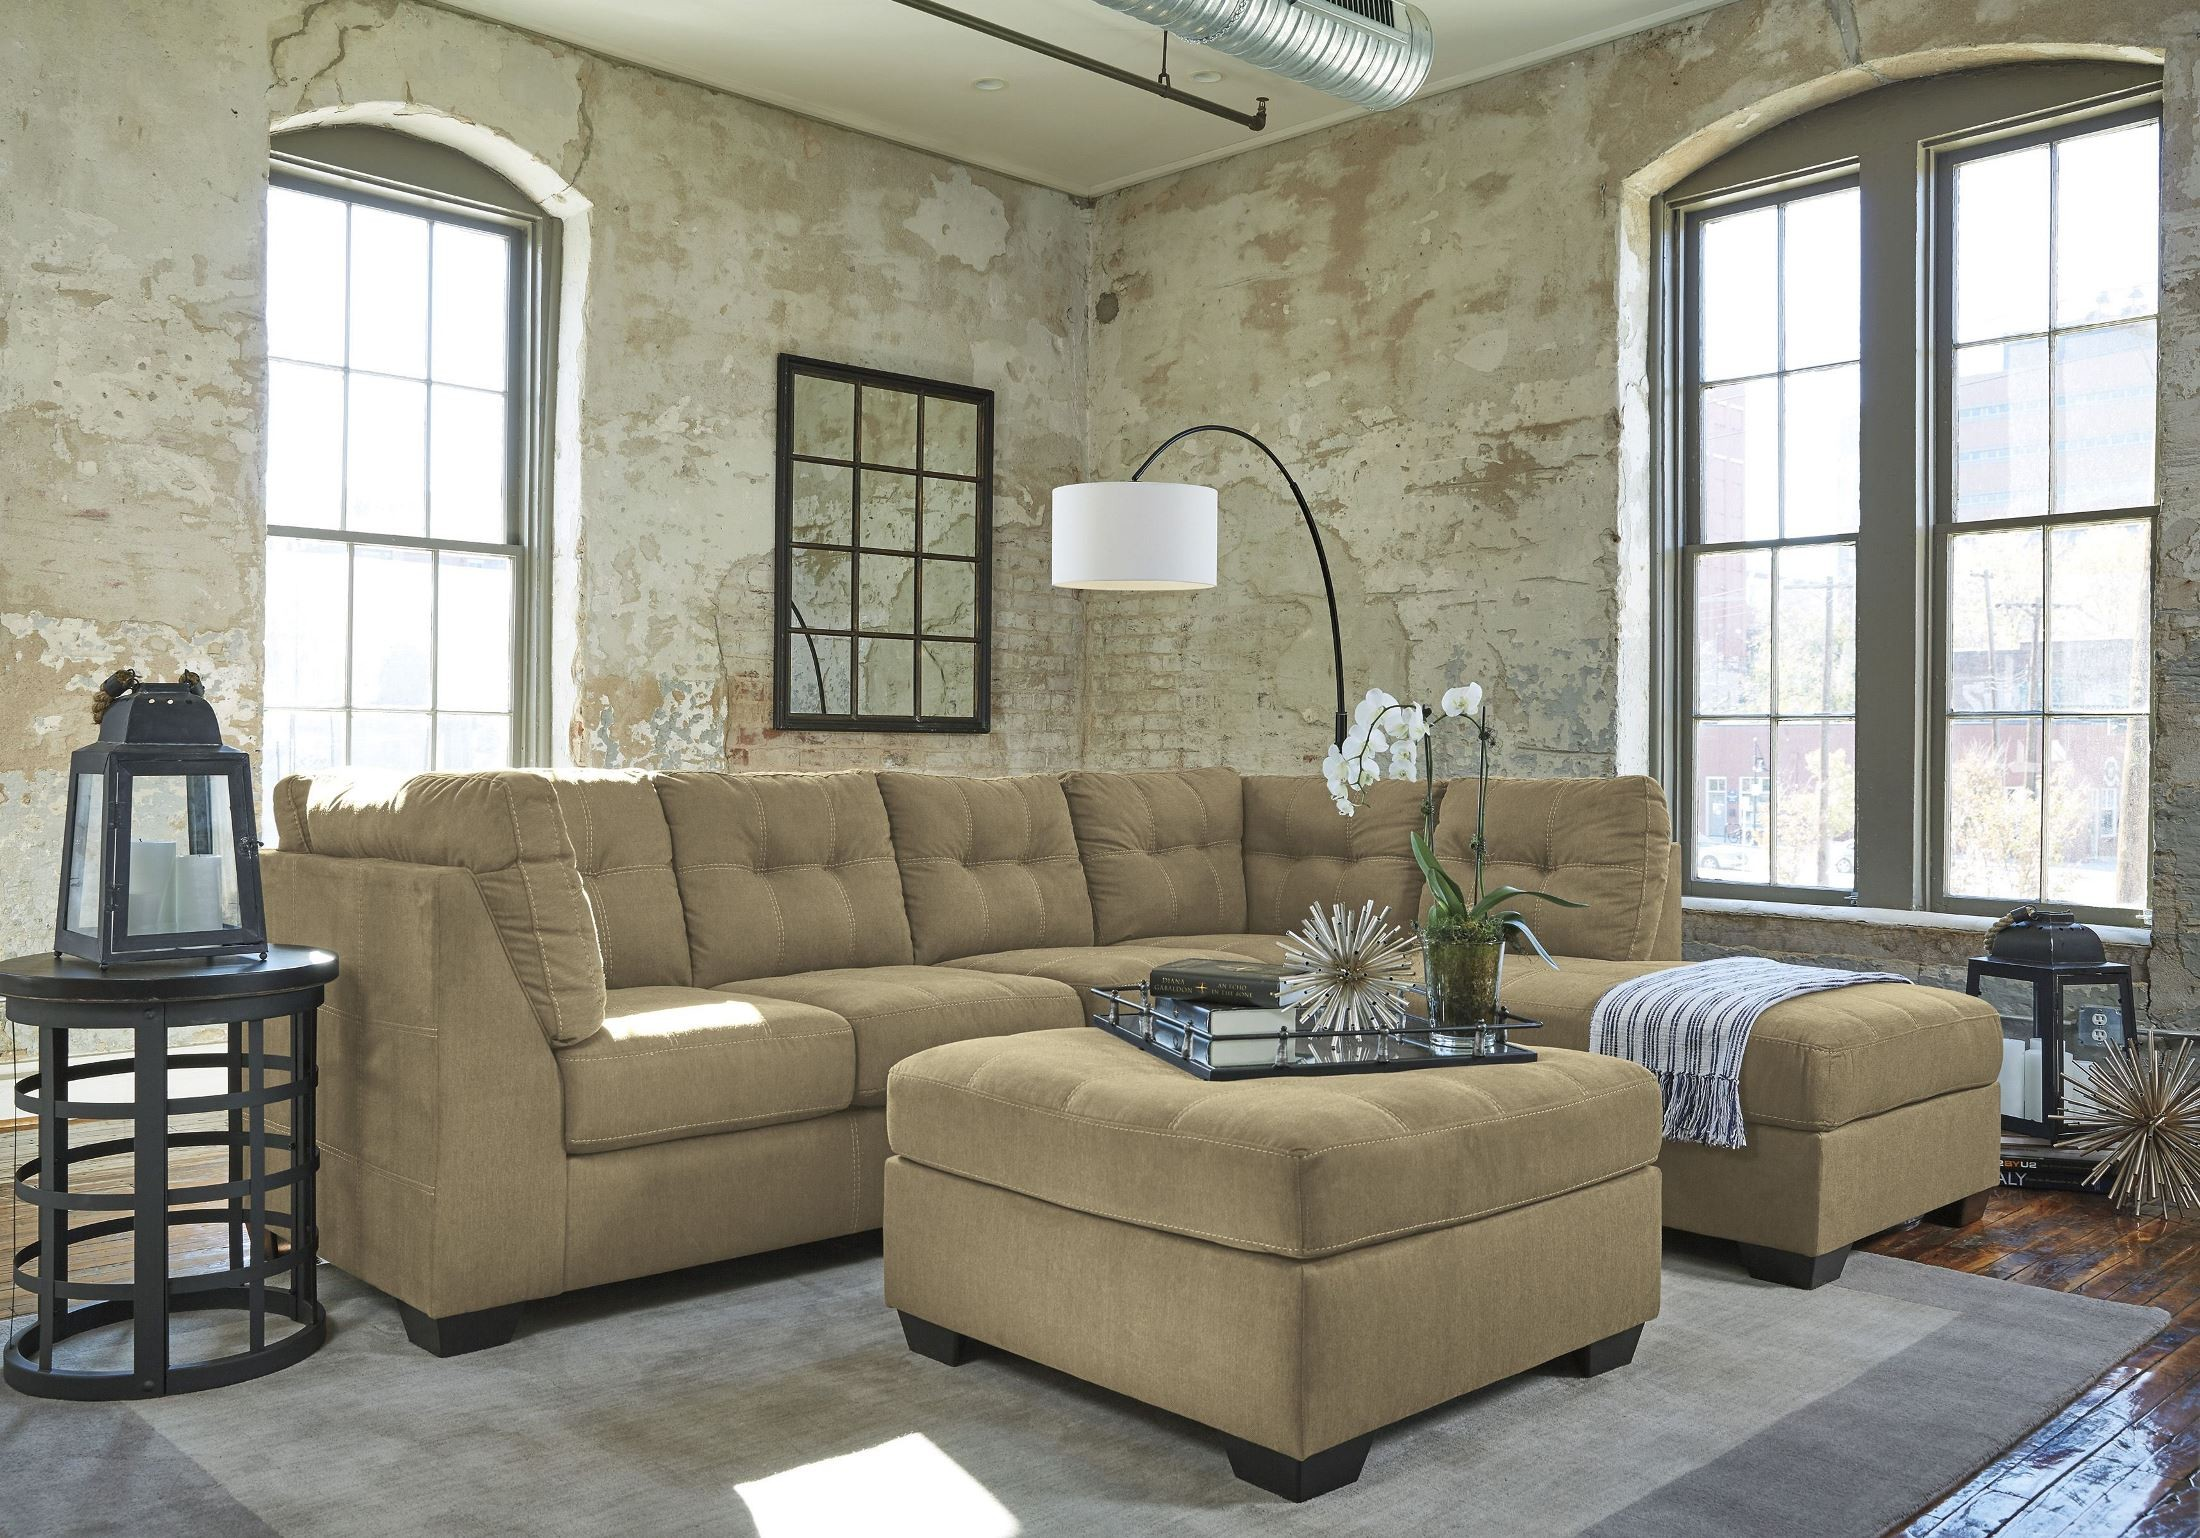 Pitkin Mocha Oversized Accent Ottoman From Ashley